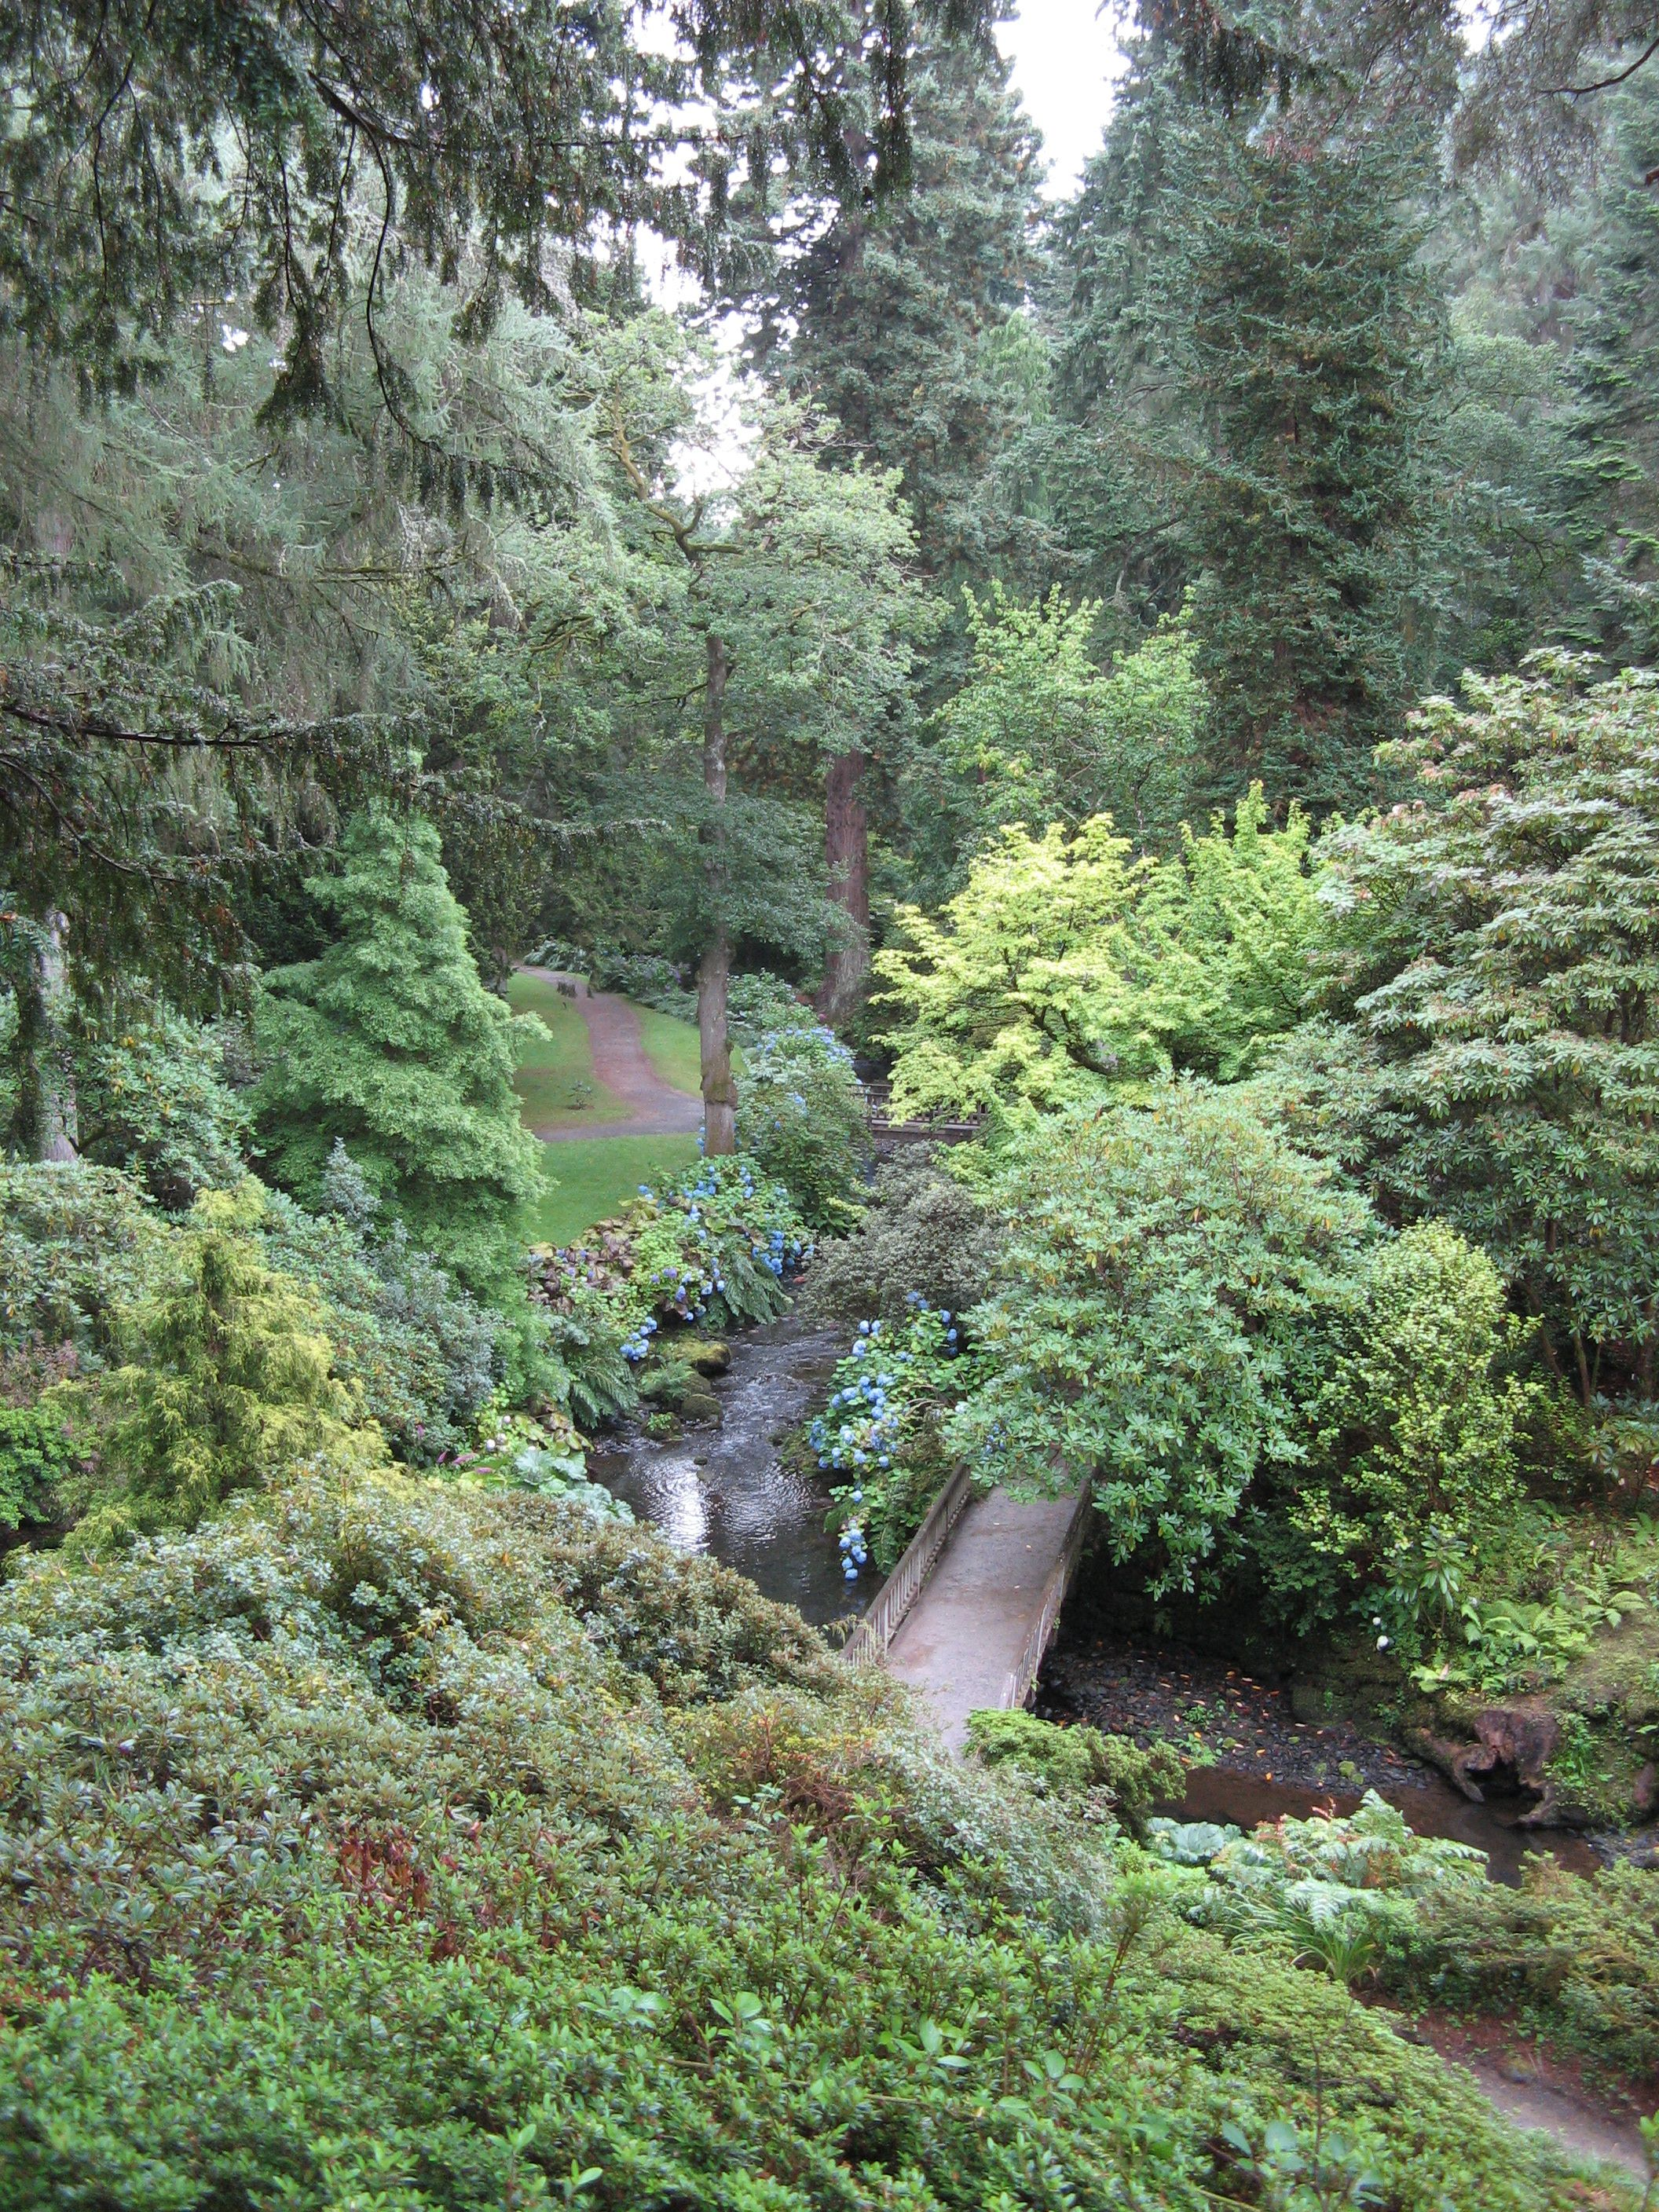 The steep wooded valley at Bodnant Gardens Natural